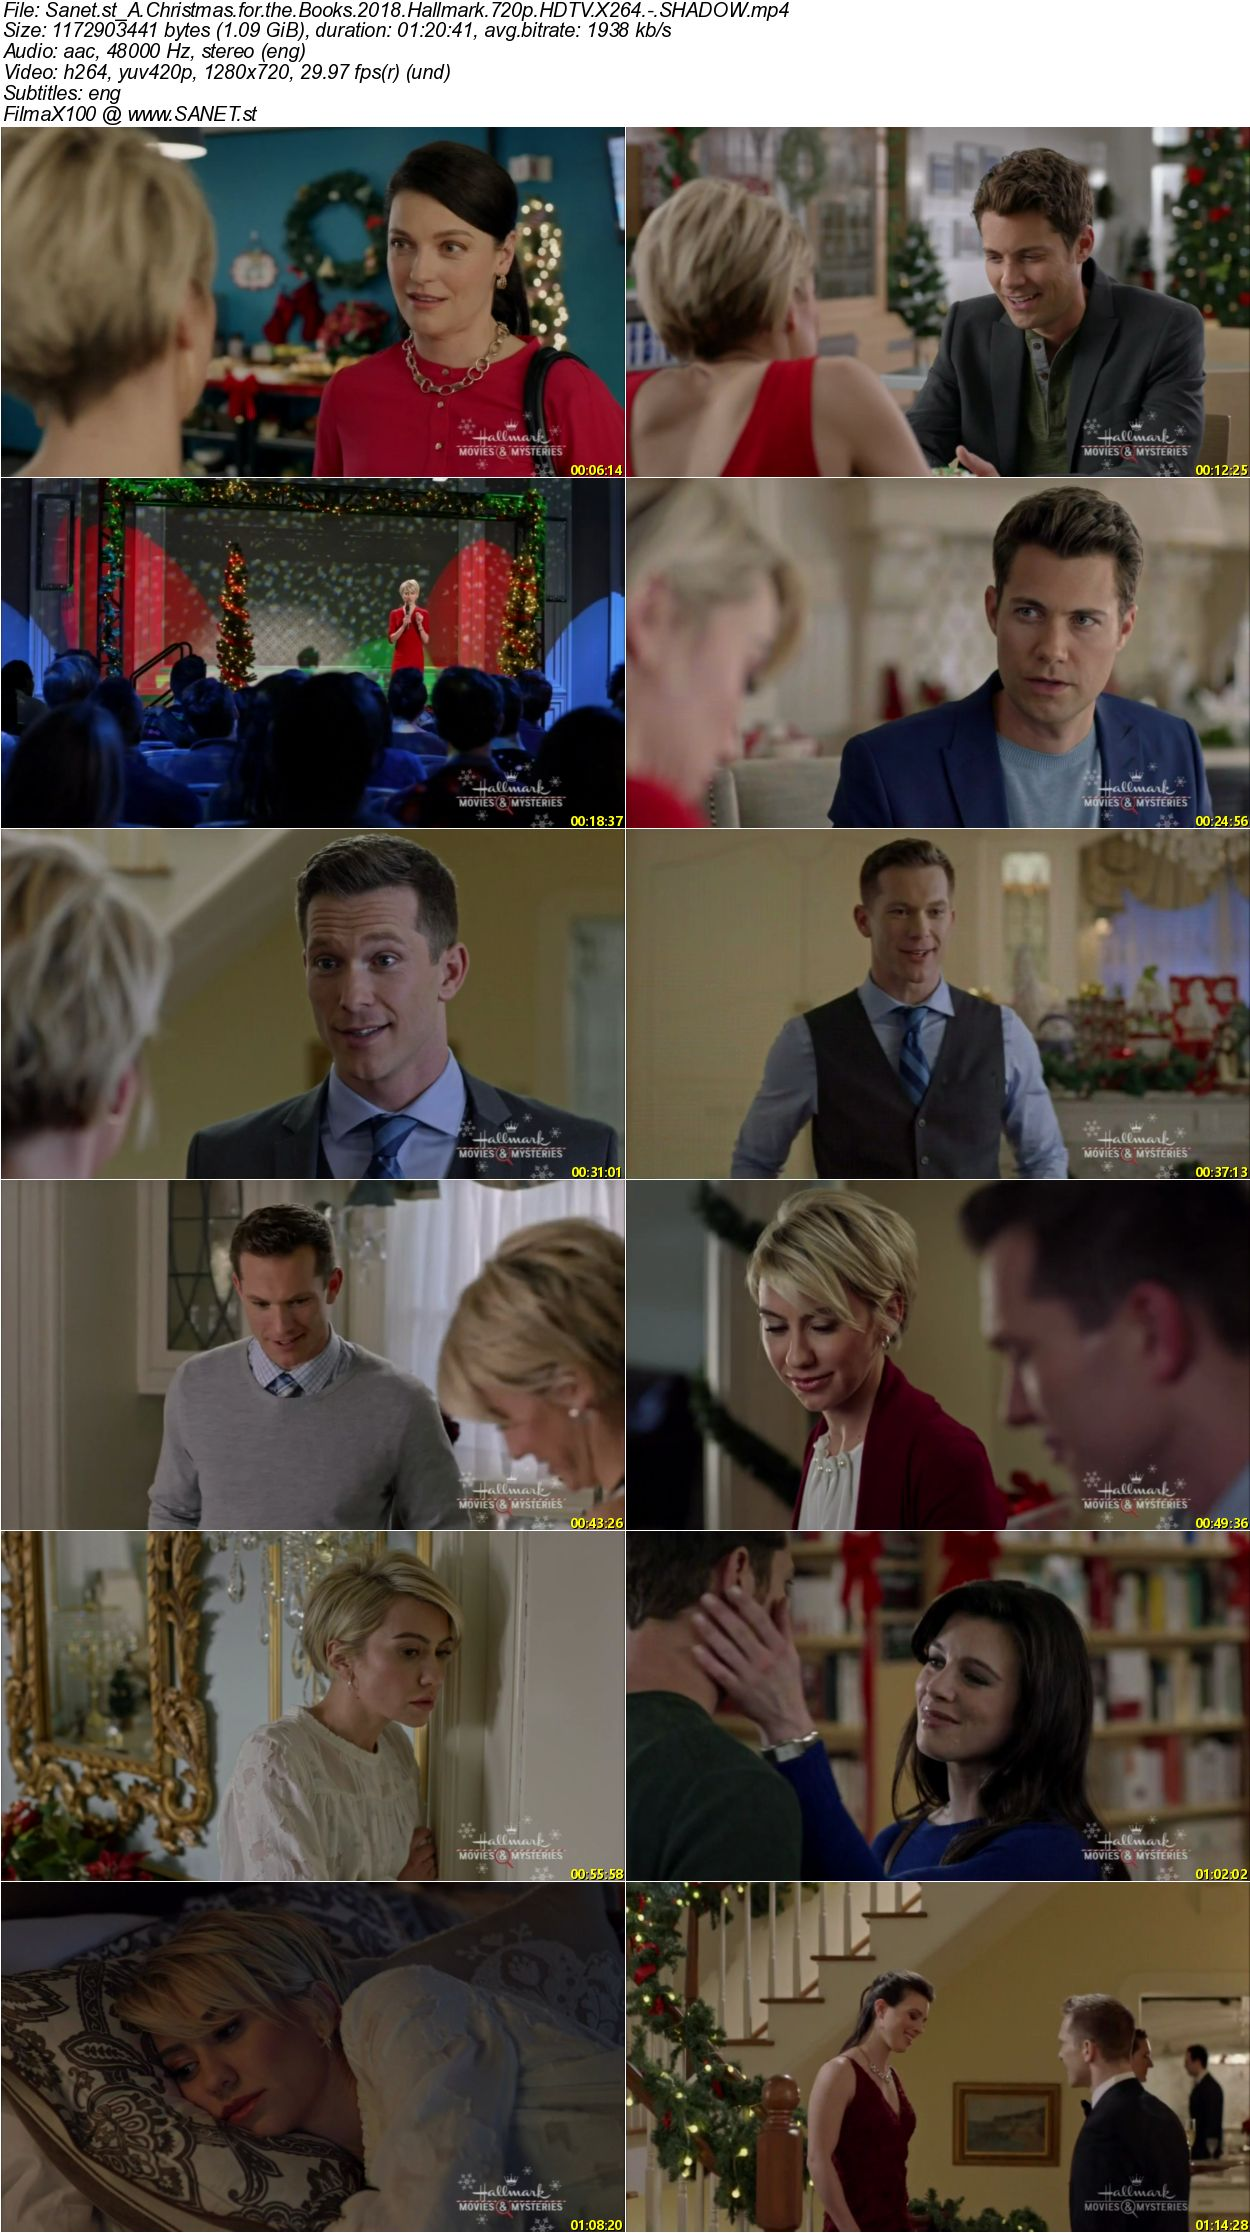 A Christmas For The Books.Download A Christmas For The Books 2018 Hallmark 720p Hdtv